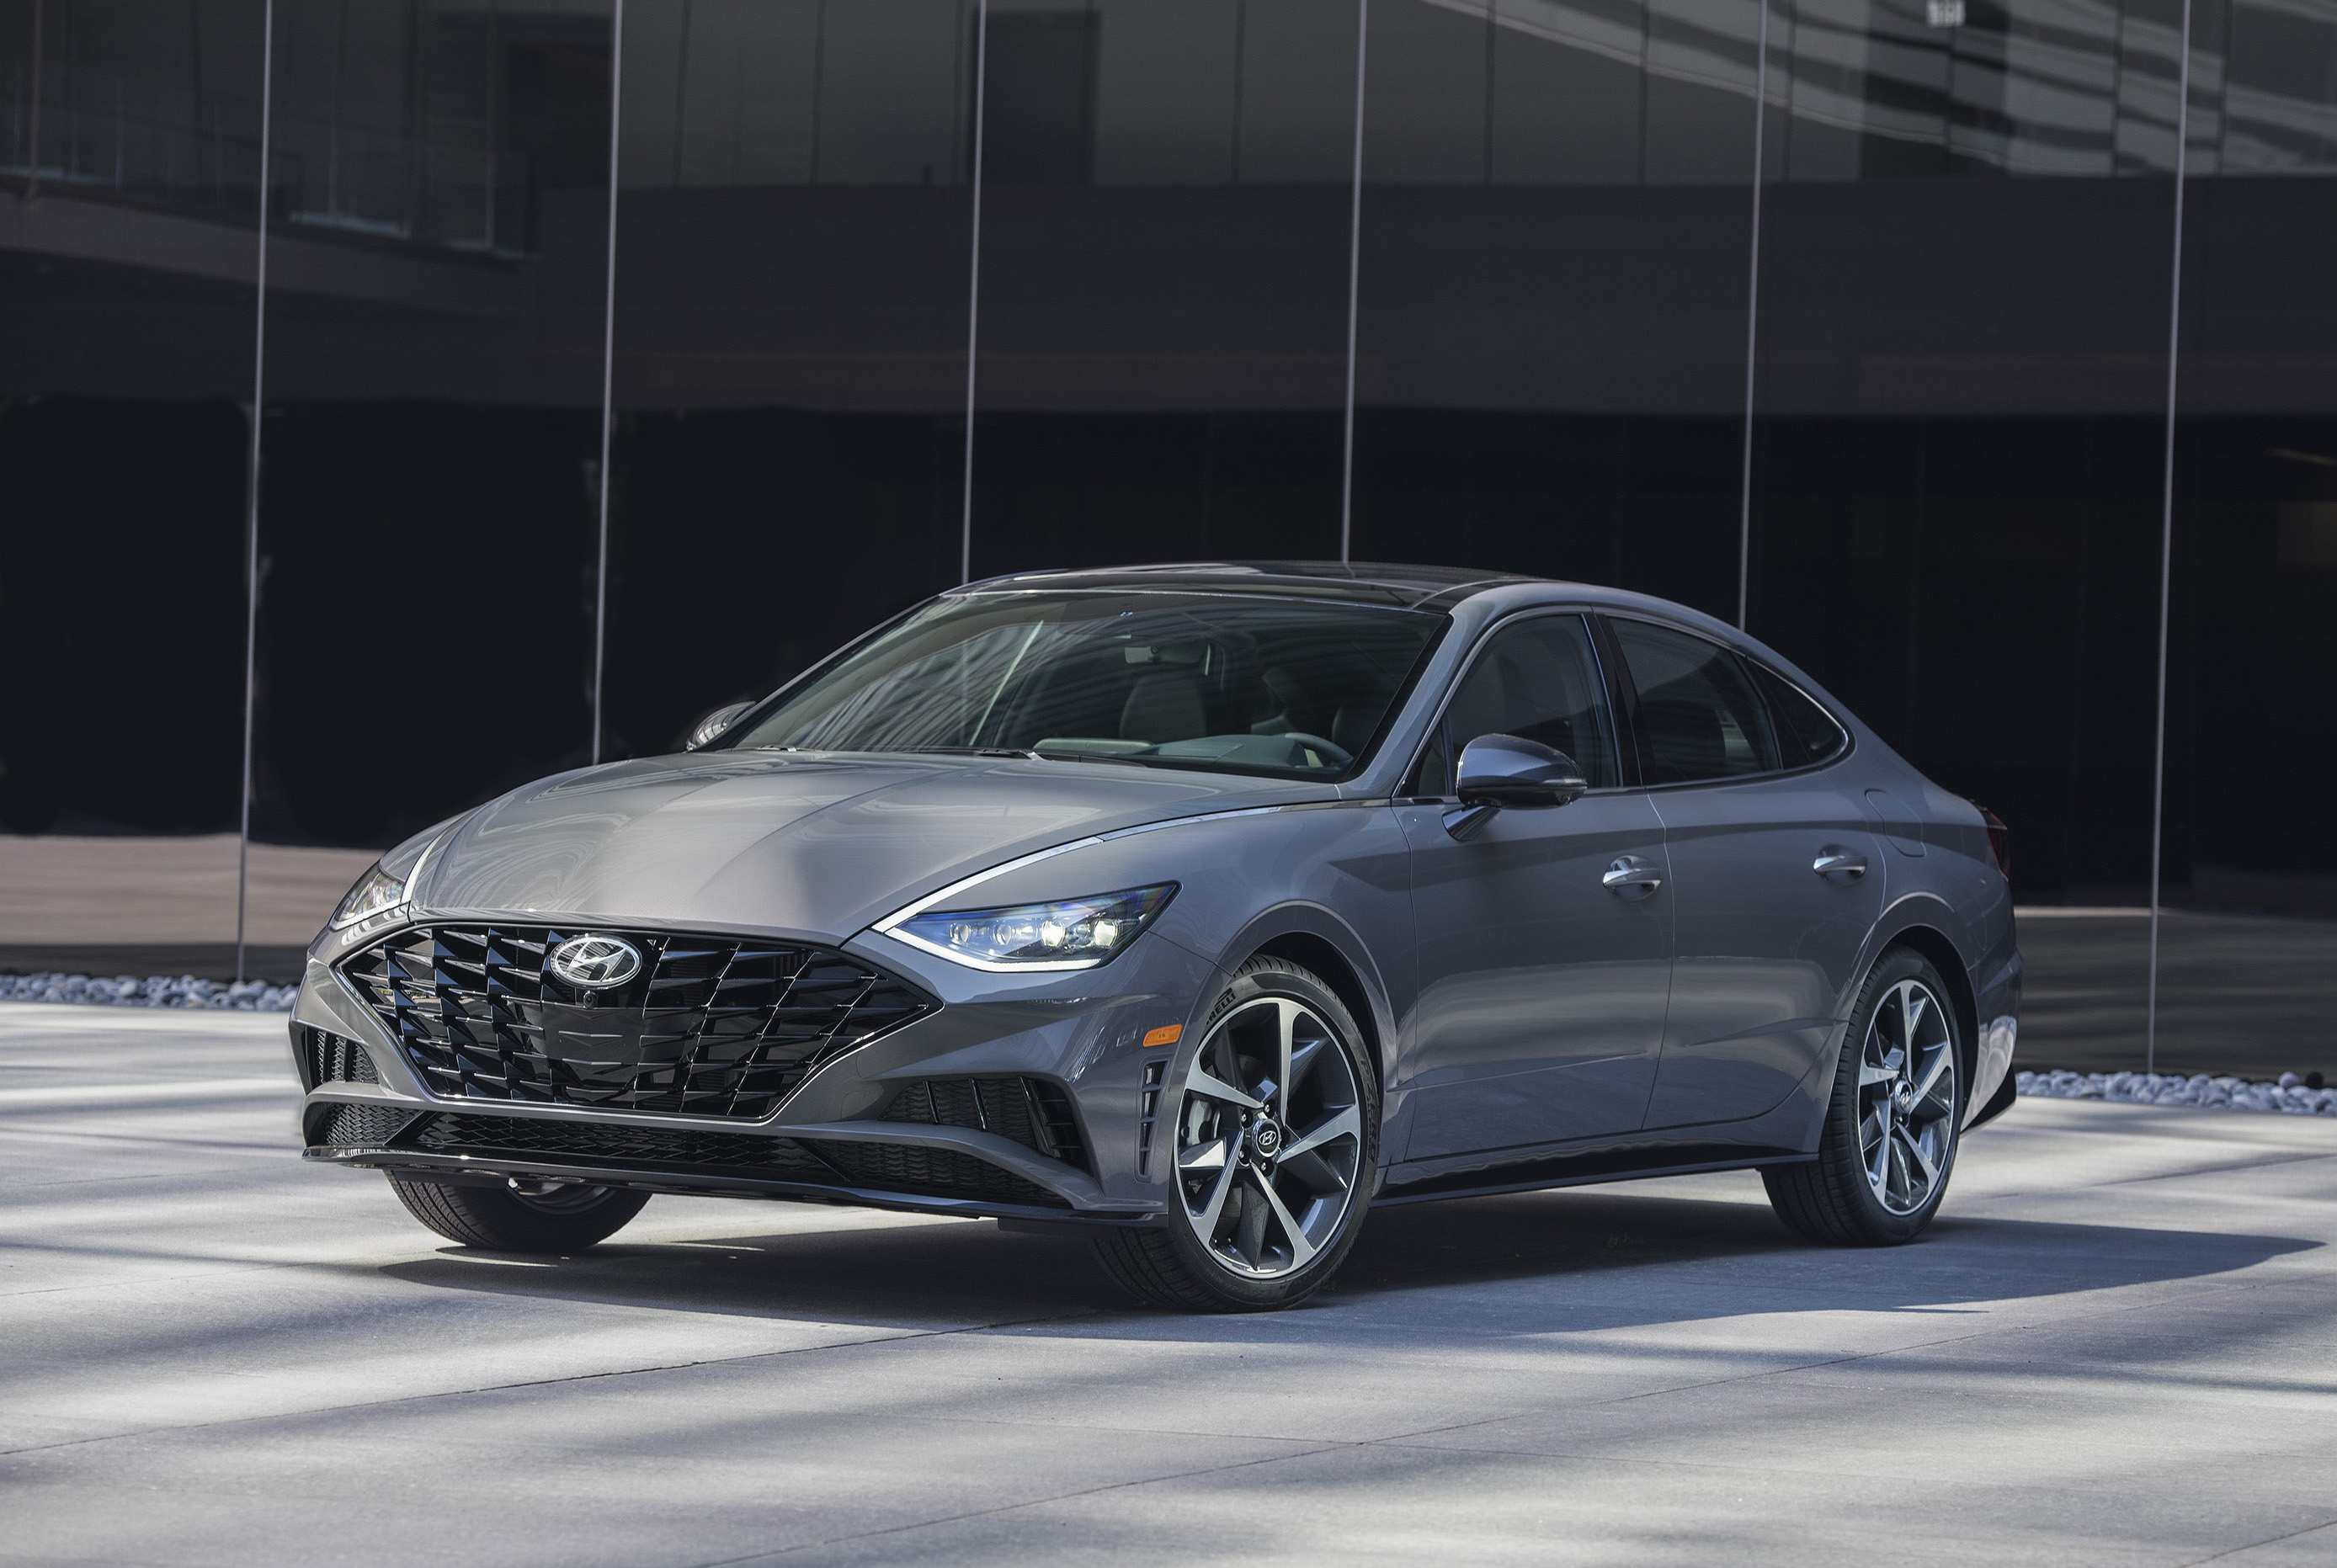 14 New 2020 Hyundai Sonata Configurations